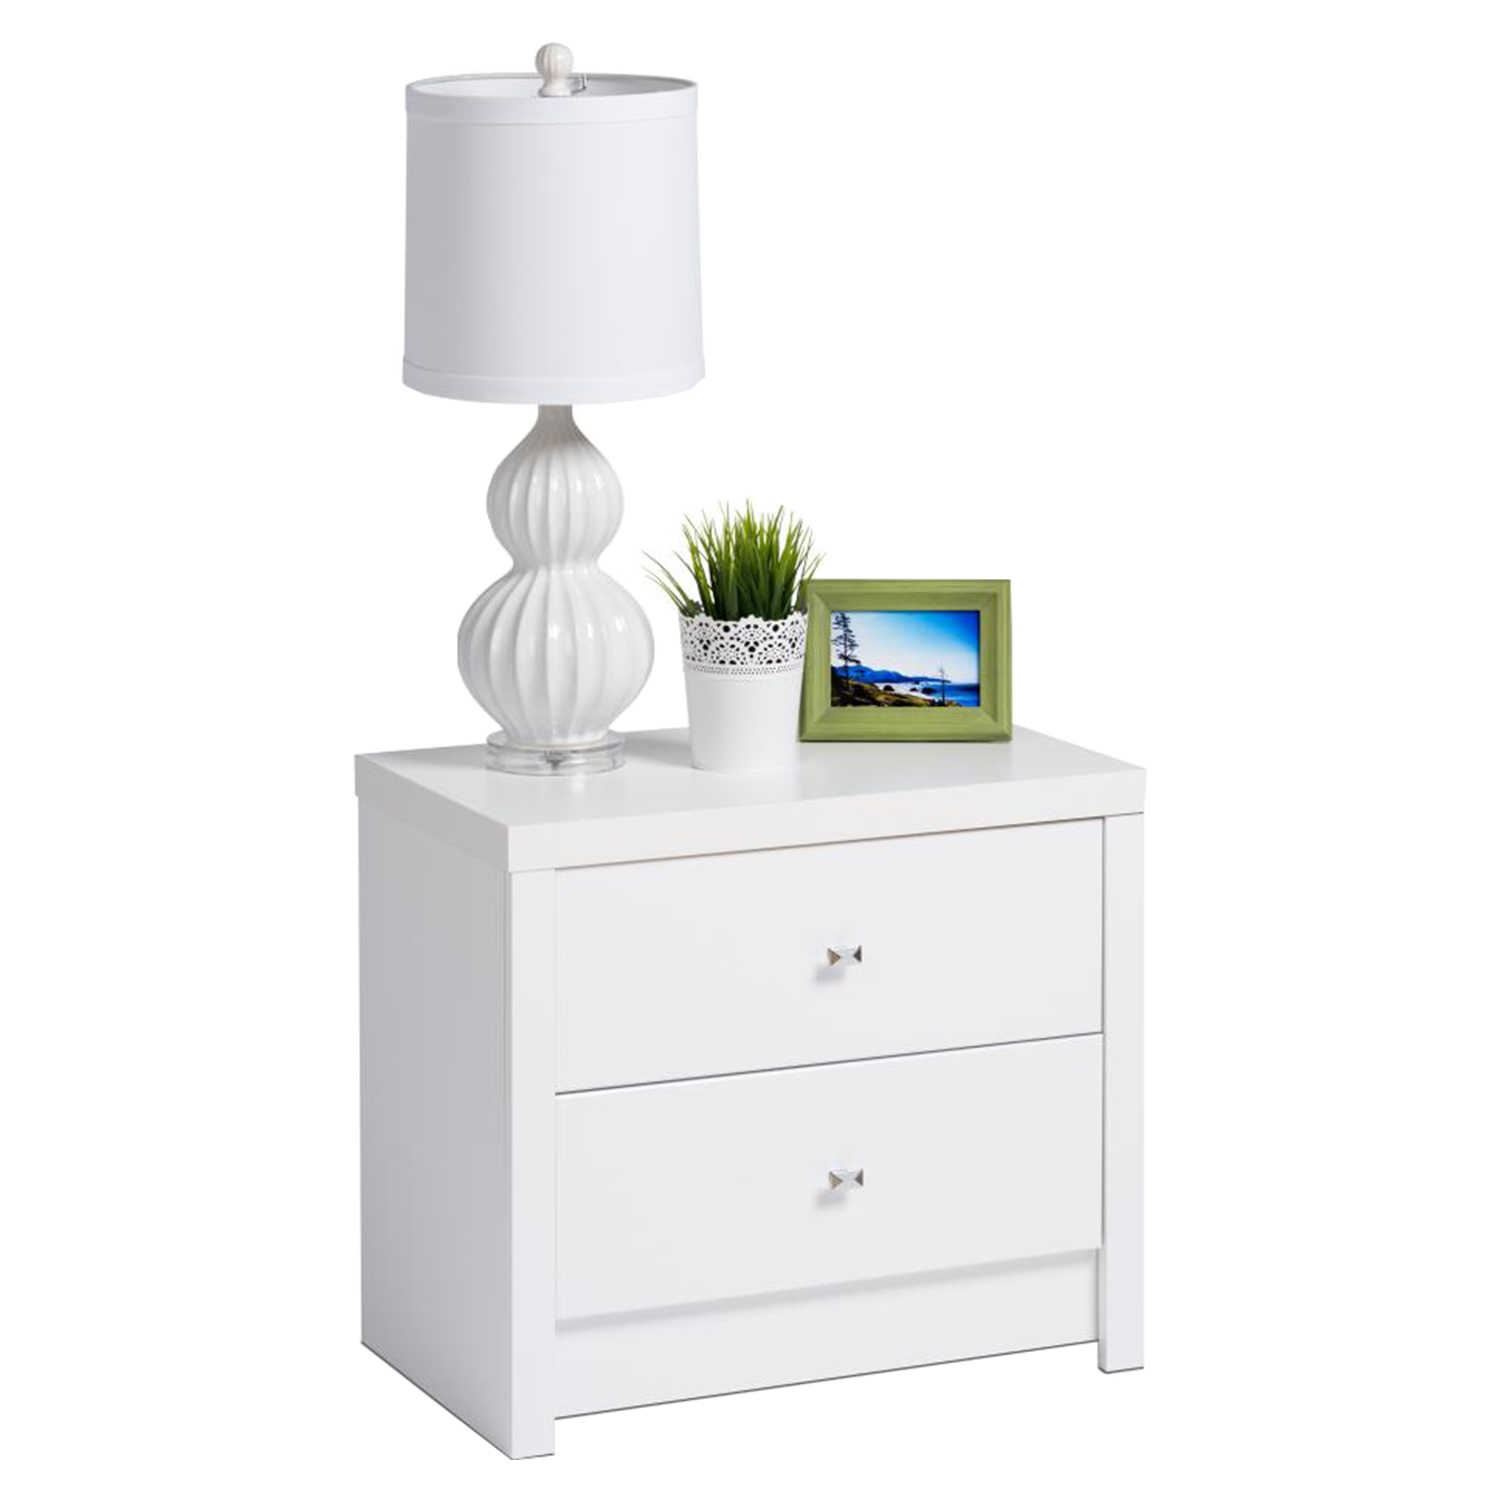 Calla 2-Drawer Nightstand - Pure White - PRE-WDNR-0520-1